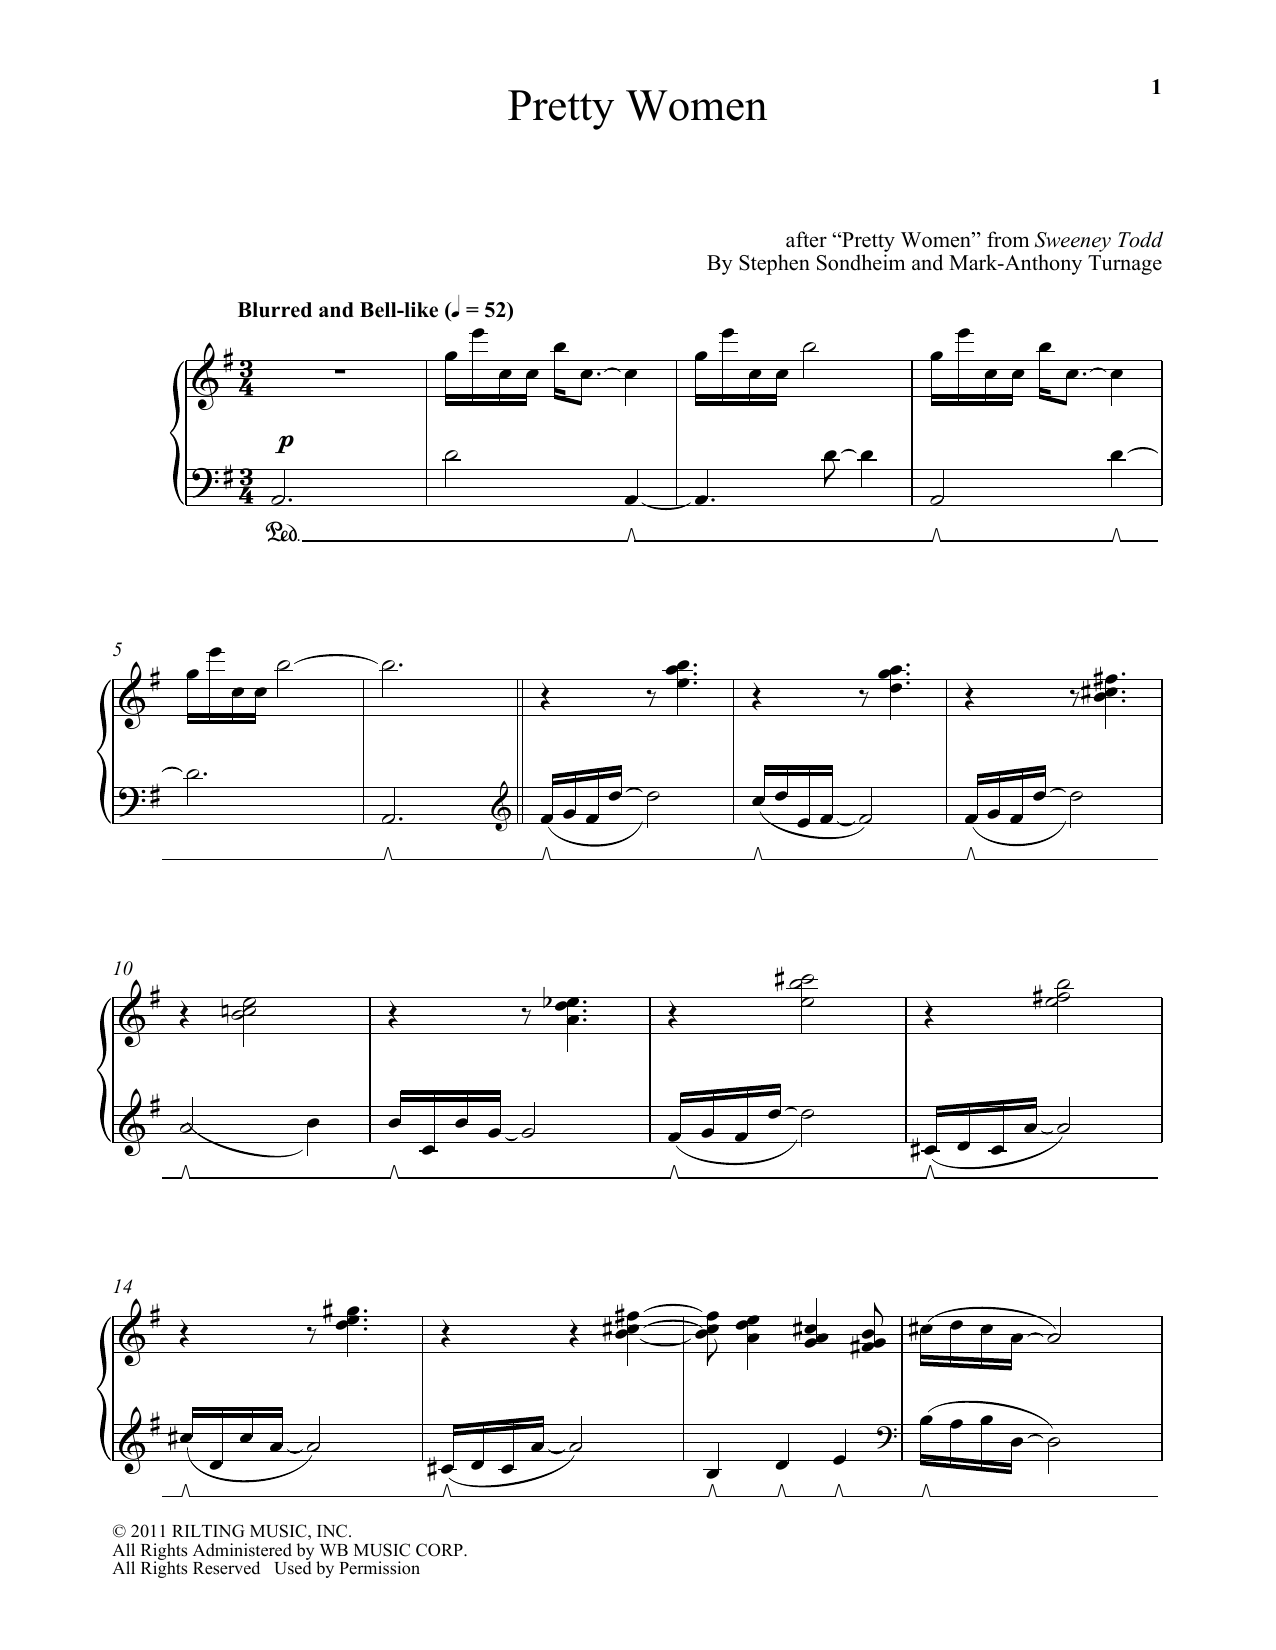 Download Mark-Anthony Turnage 'Pretty Women' Digital Sheet Music Notes & Chords and start playing in minutes